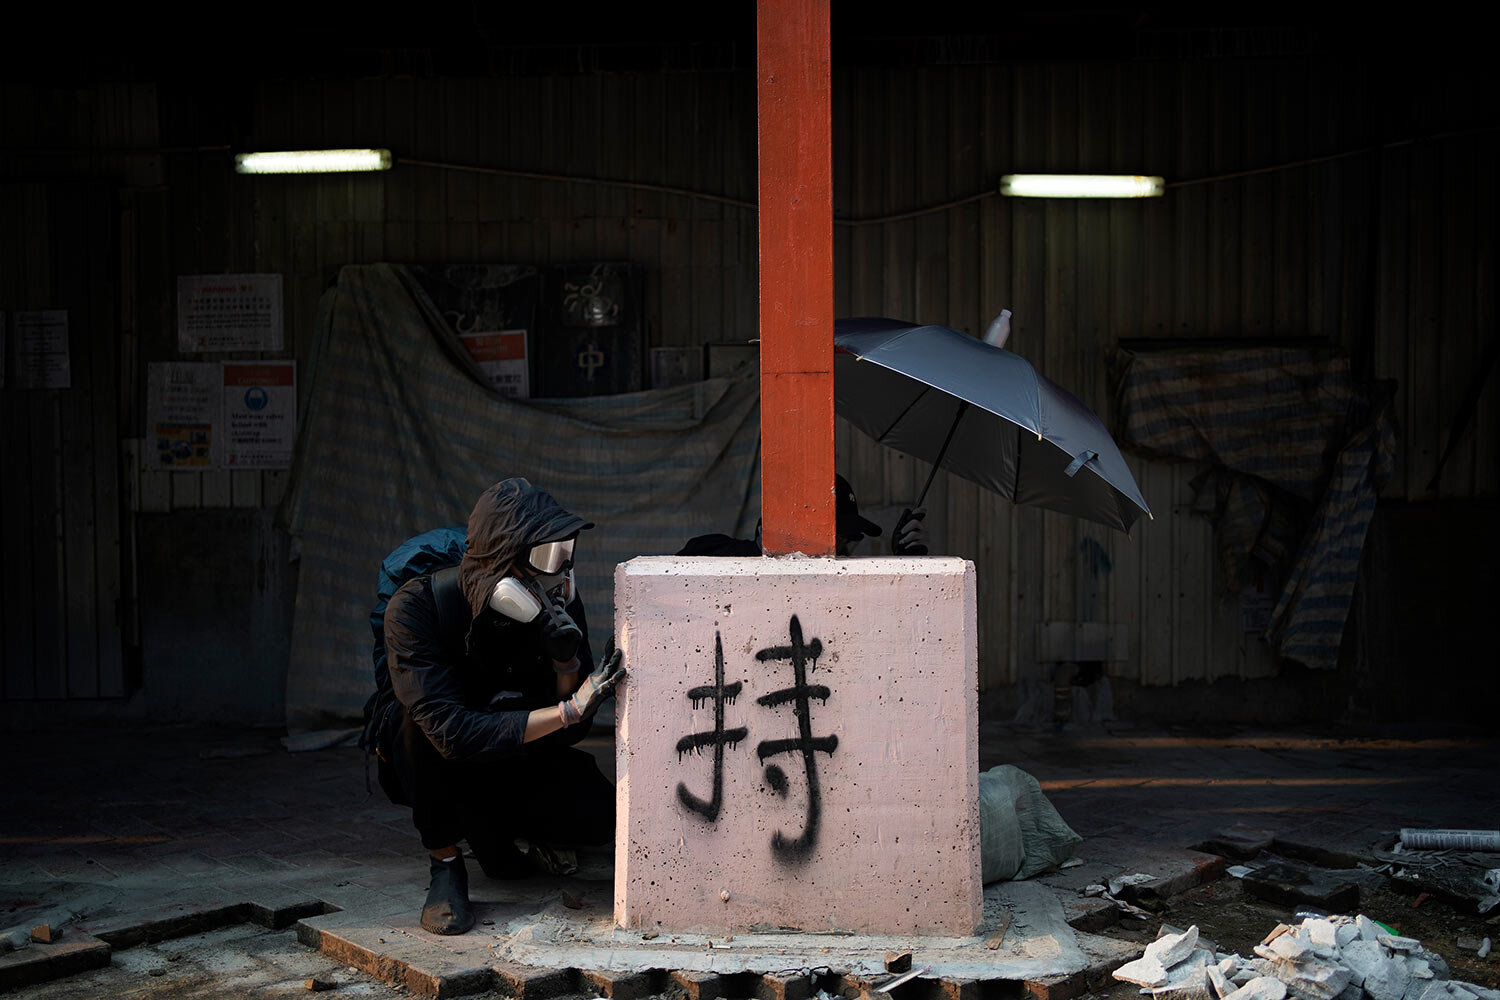 Protesters take cover during a confrontation with police in Hong Kong, Sunday, Oct. 20, 2019, ignoring a ban on the rally and setting up barricades amid tear gas and firebombs. Demonstrations since June have called for full democracy and police accountability. (AP Photo/Felipe Dana)